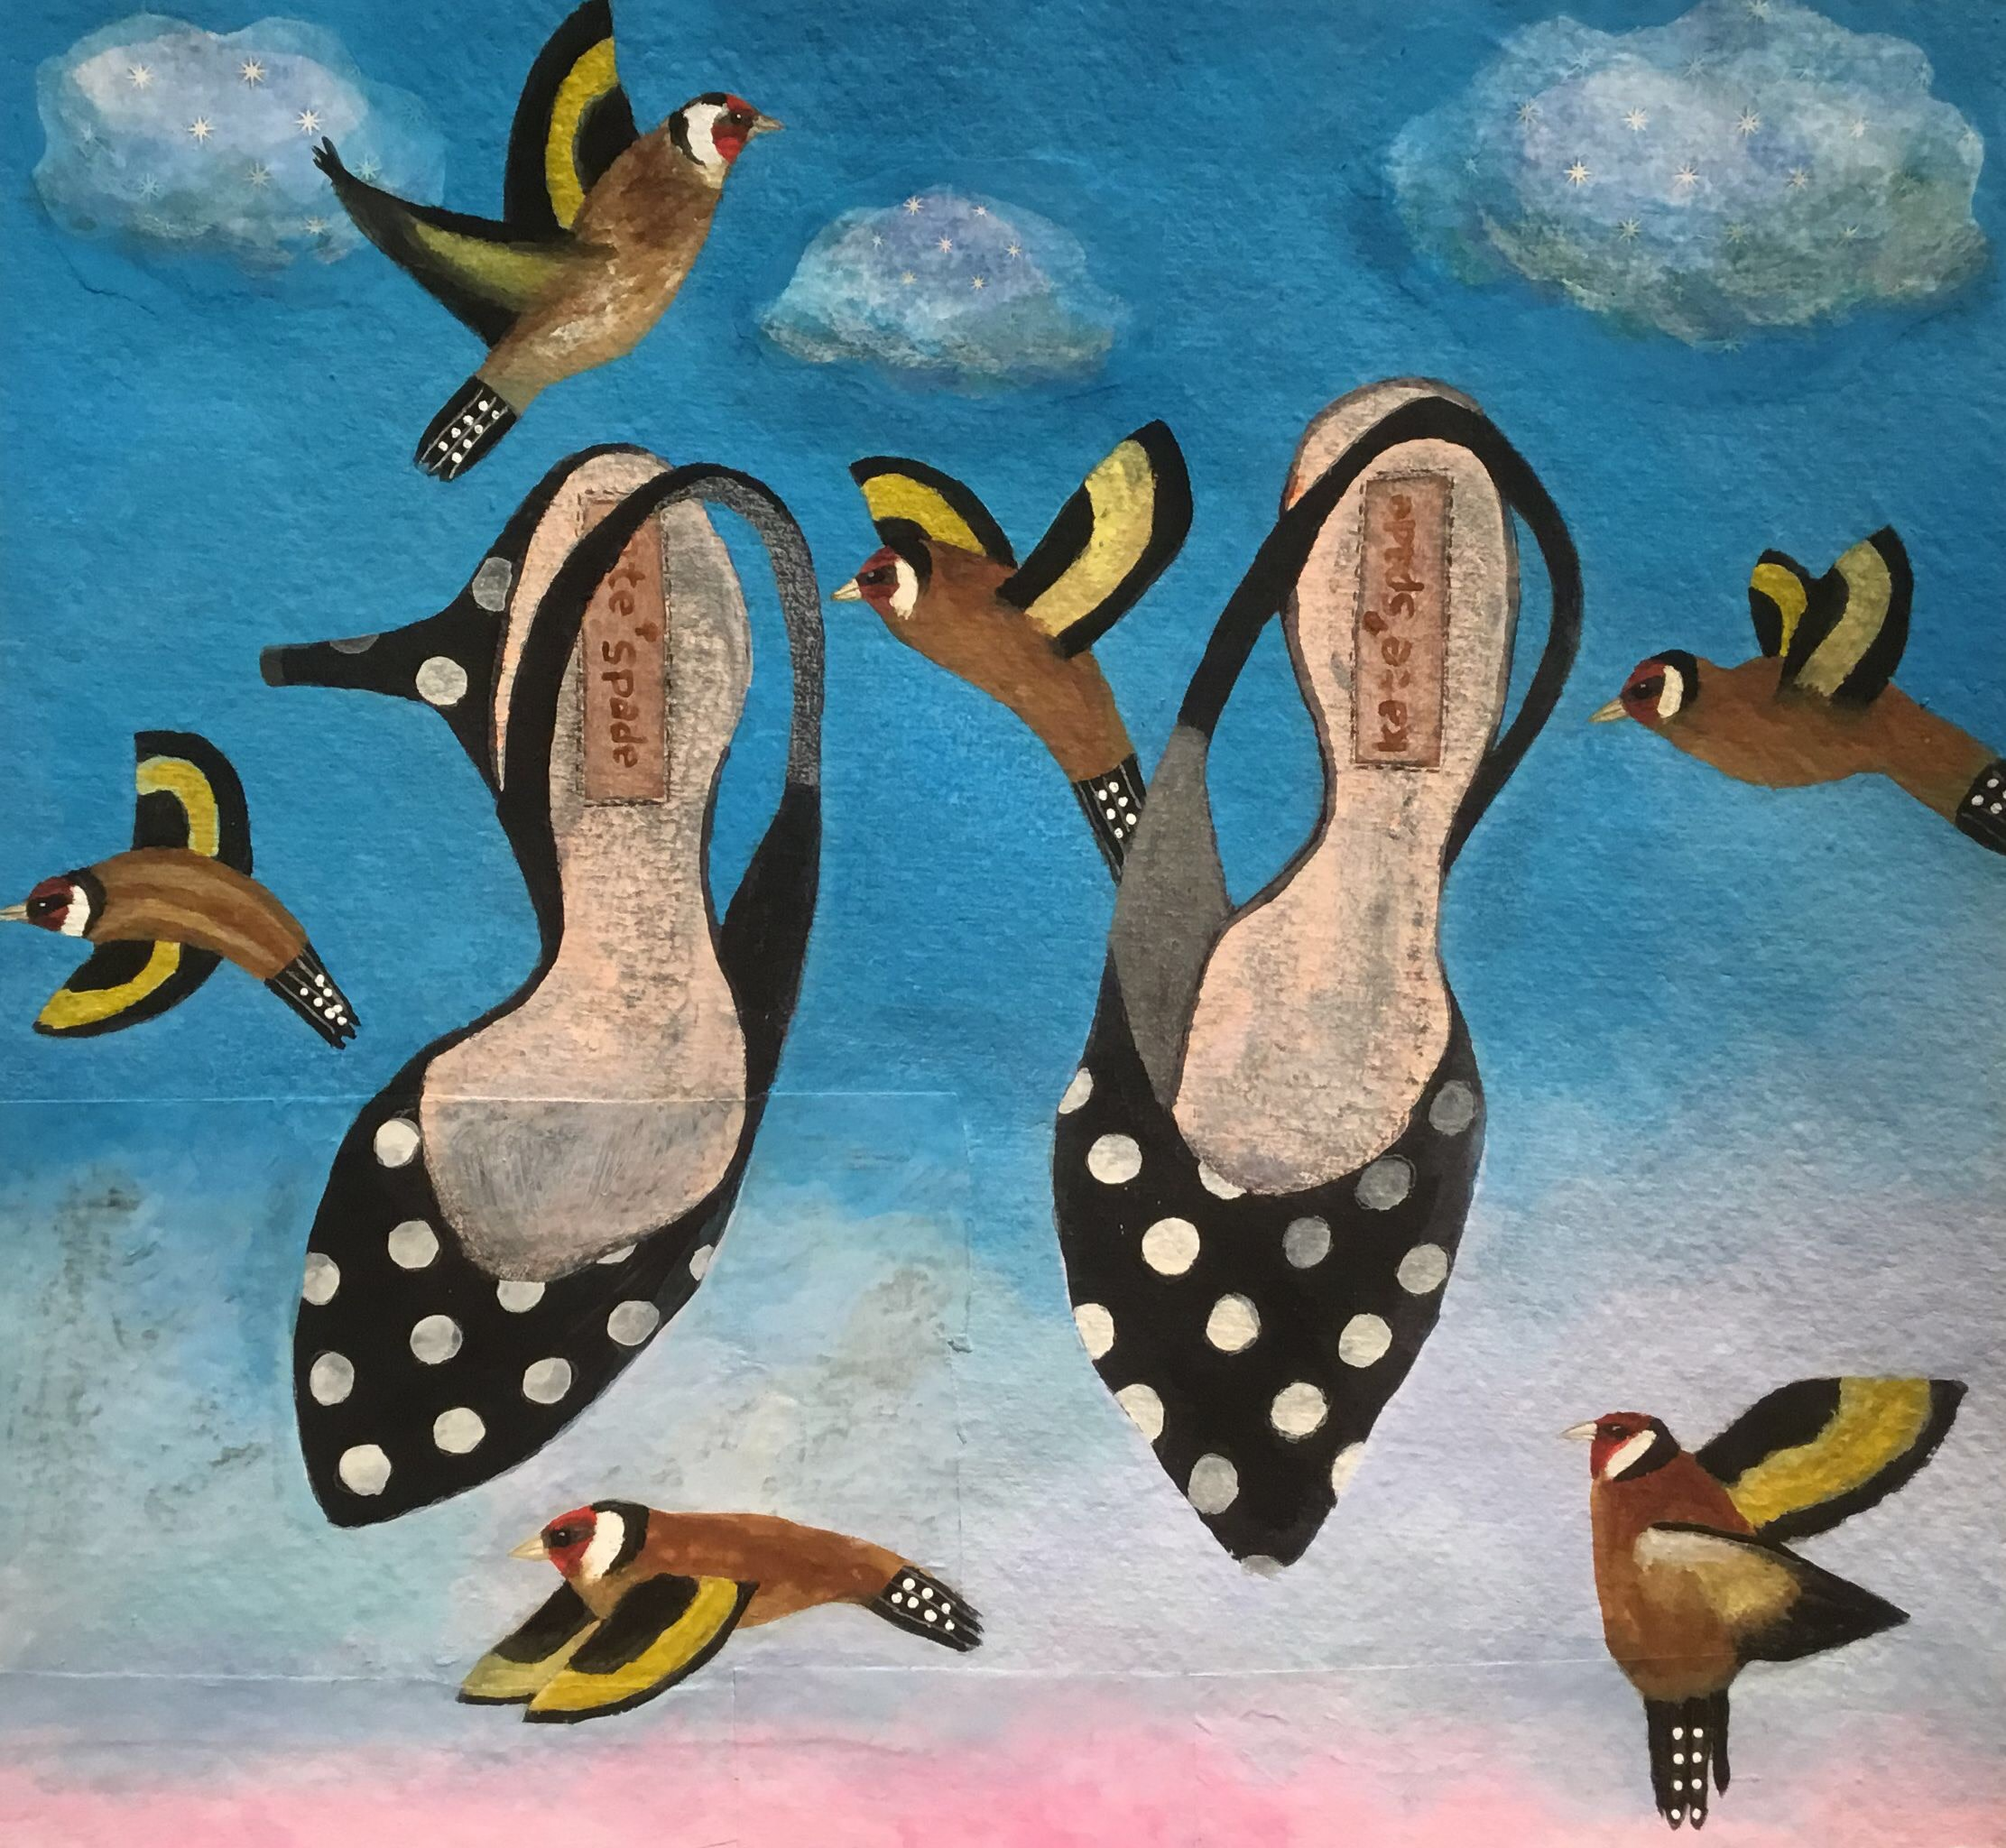 """<span class=""""link fancybox-details-link""""><a href=""""/artists/146-gertie-young/works/12700-gertie-young-goldfinches-among-the-kitten-heels/"""">View Detail Page</a></span><div class=""""artist""""><span class=""""artist""""><strong>Gertie Young</strong></span></div><div class=""""title""""><em>Goldfinches among the Kitten Heels</em></div><div class=""""medium"""">watercolour, gouache & collage on card</div><div class=""""dimensions"""">Artwork: 39 x 39cm</div><div class=""""price"""">£290.00</div>"""